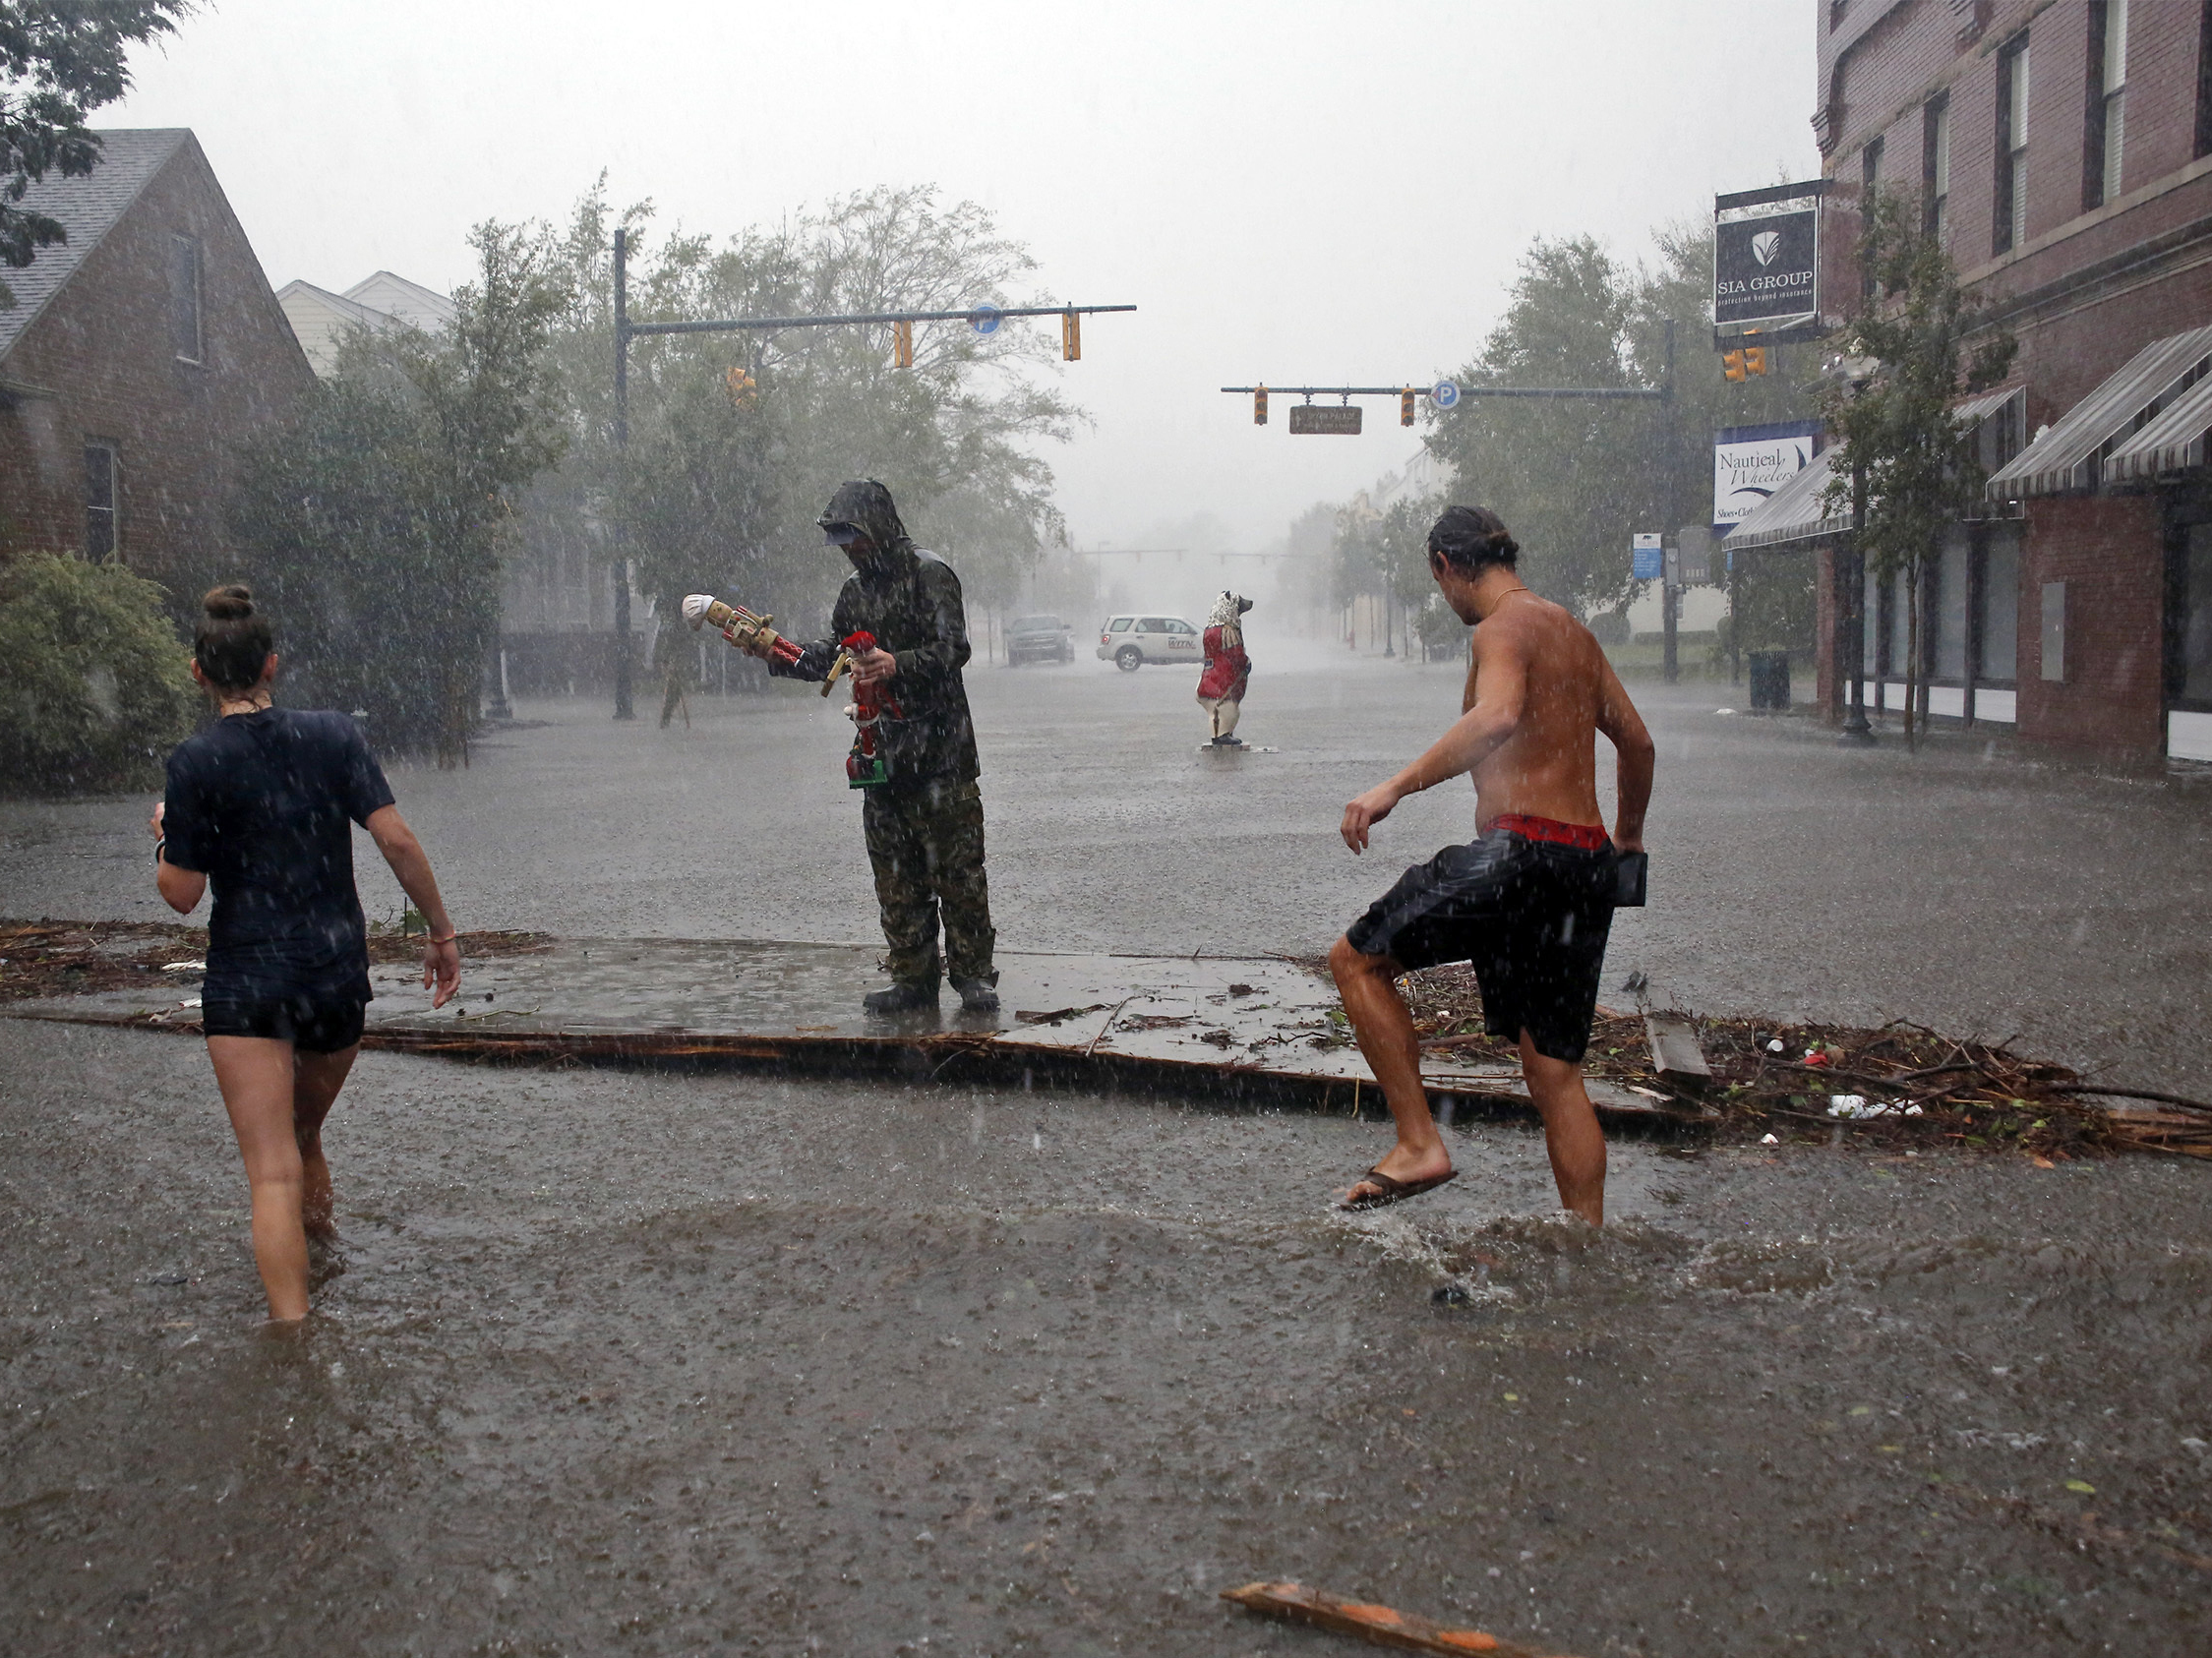 People survey damage and flooding brought by Hurricane Florence to Front Street in downtown New Bern N.C. Friday